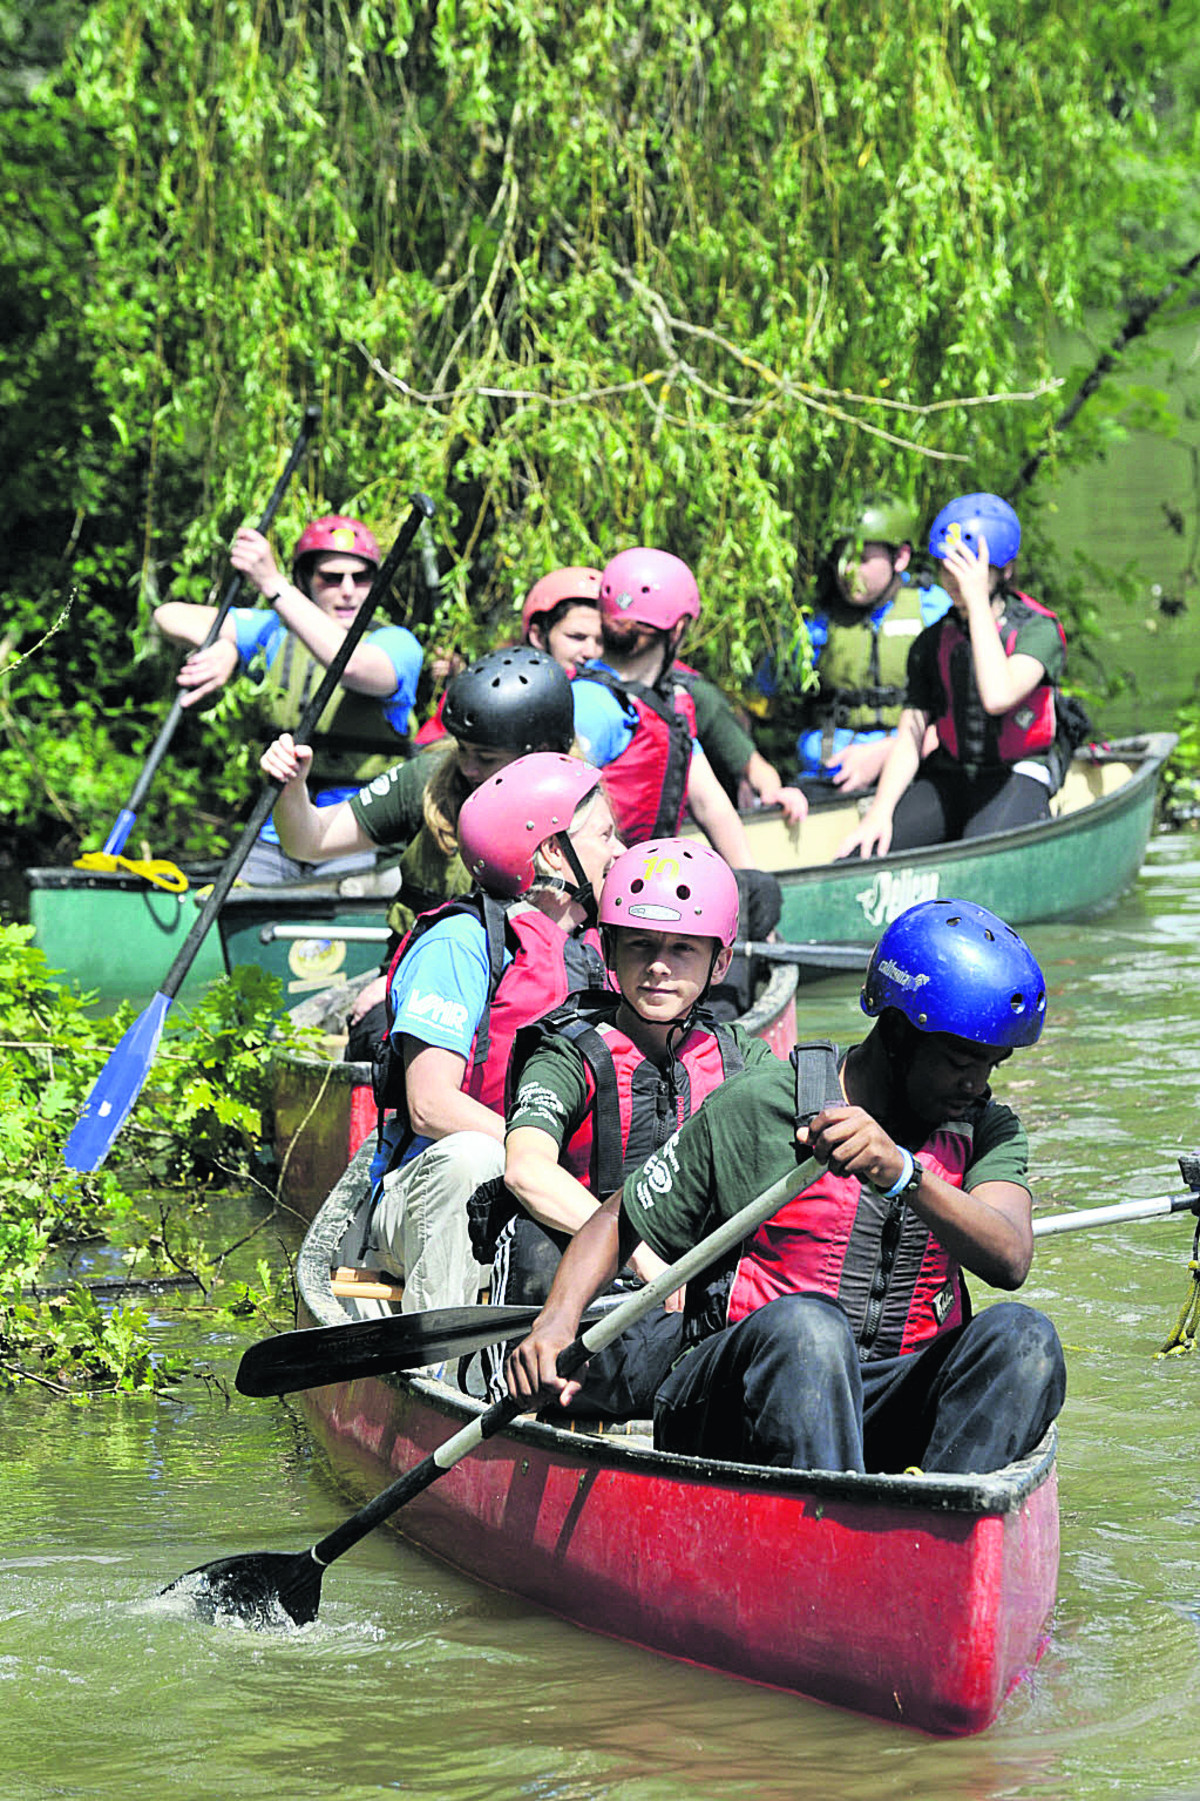 Volunteers and donations needed to help more Wiltshire children through Youth Adventure Trust